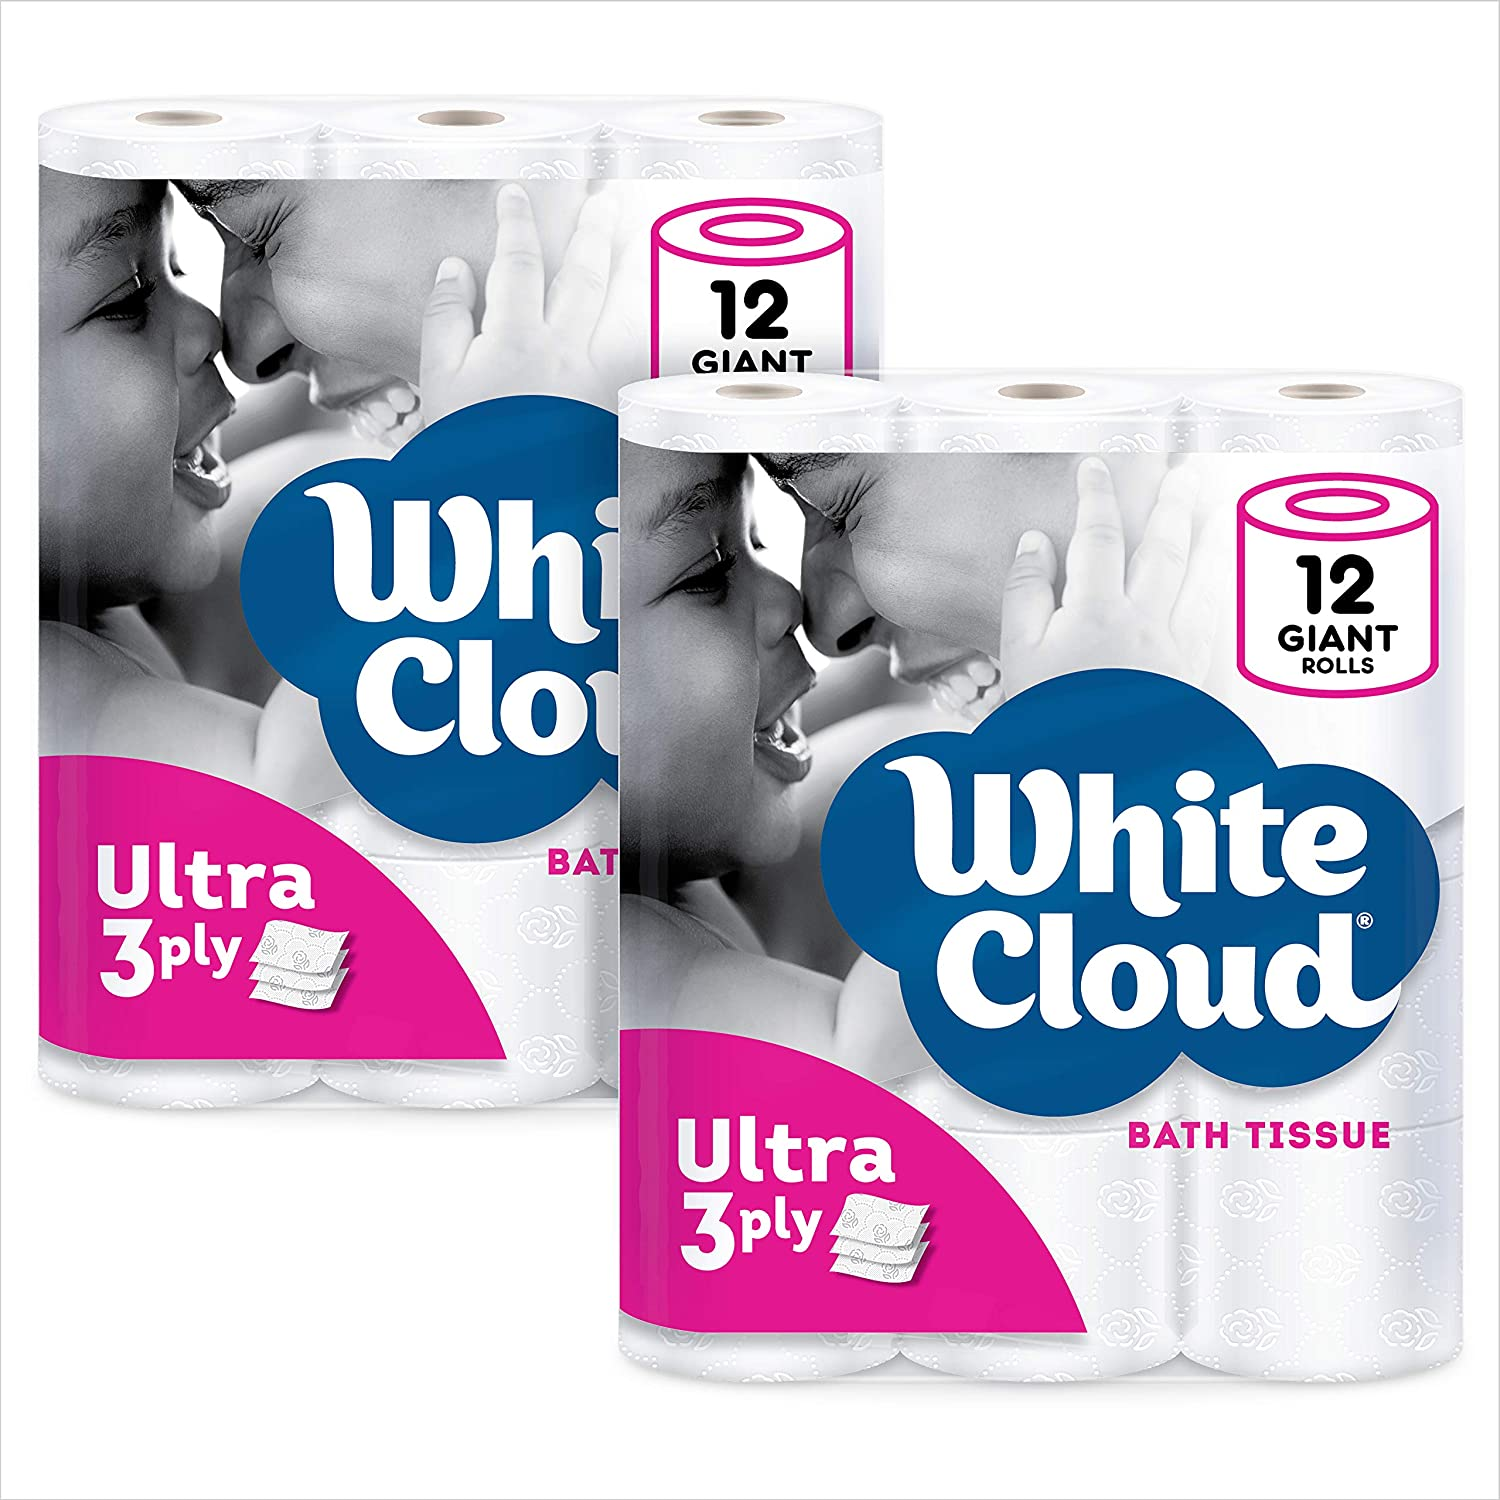 White Cloud Ultra Soft & Thick 3-Ply Toilet Paper